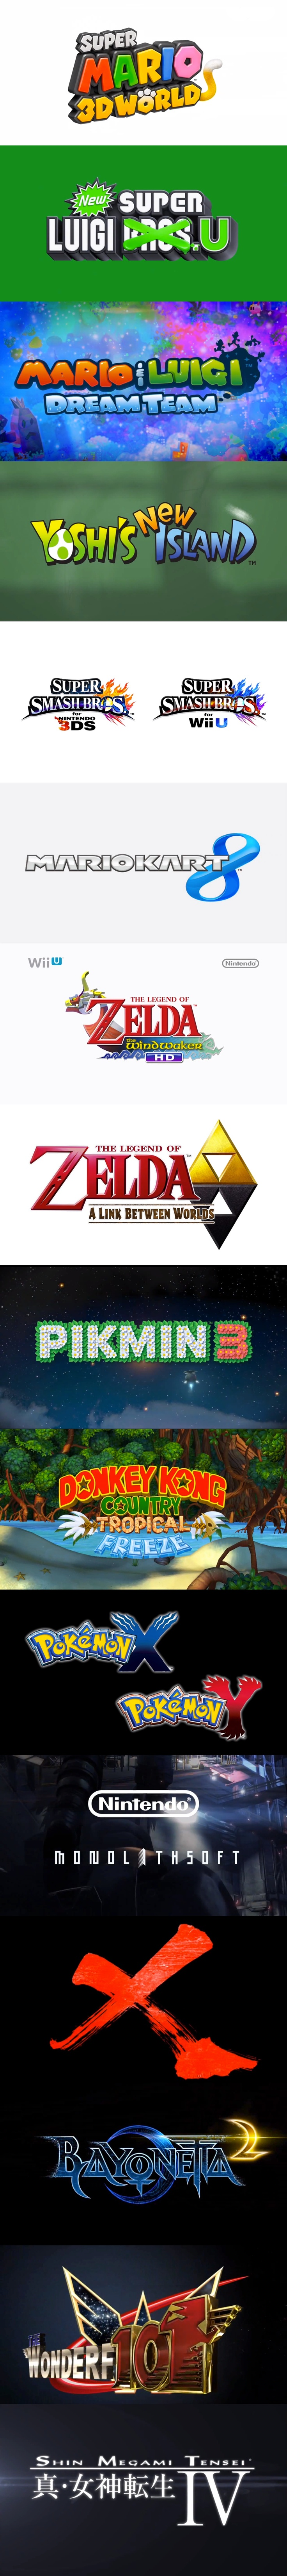 1000 images about wii u and wii u games on pinterest super mario